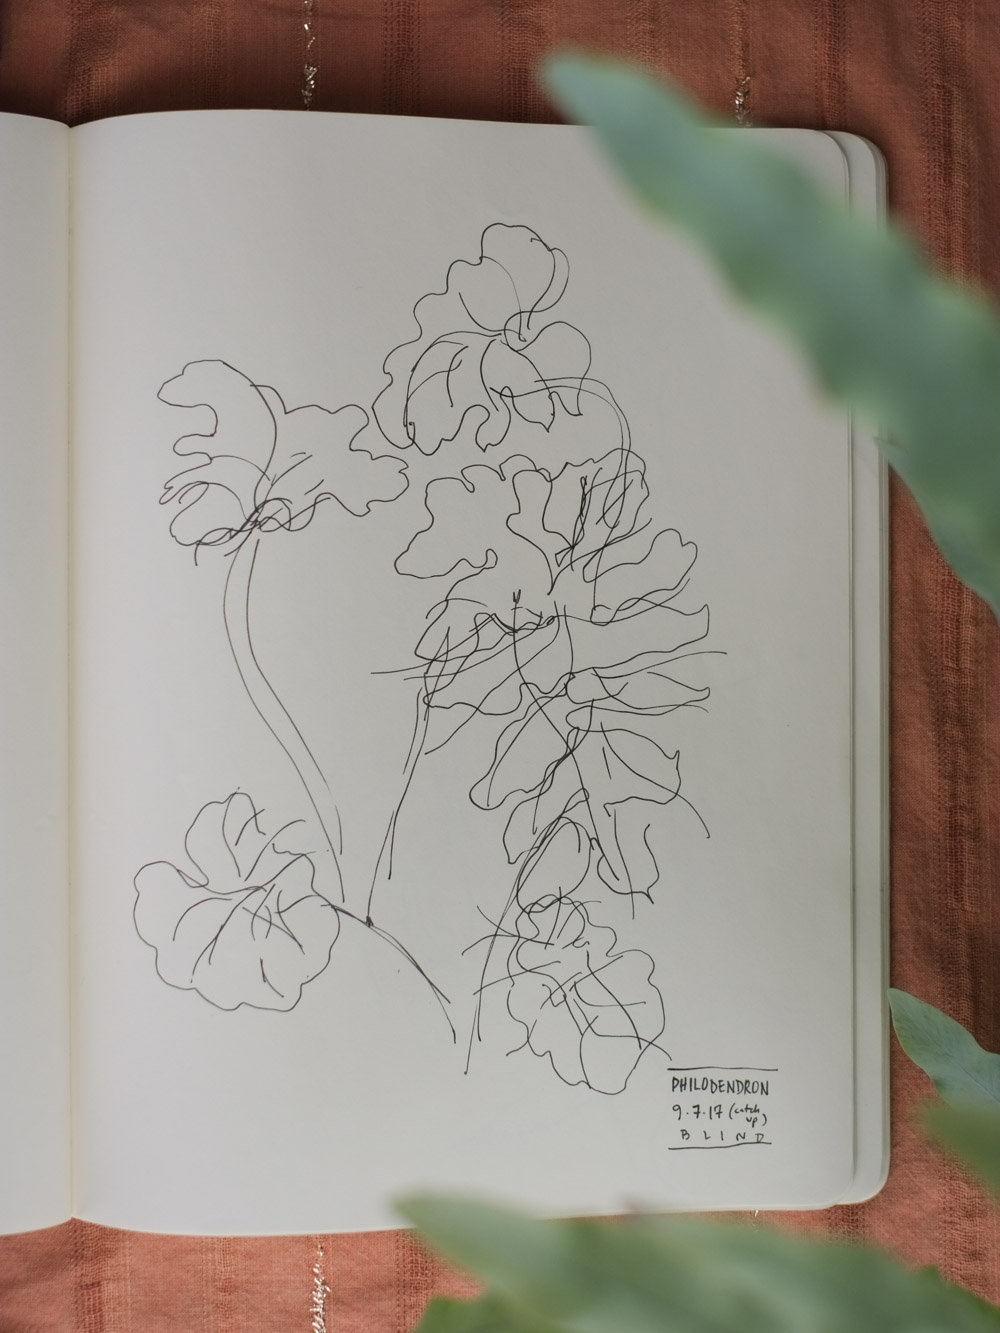 Erin_Ellis_daily_botanical_blind_drawings_sept_2017.jpg-14.jpg